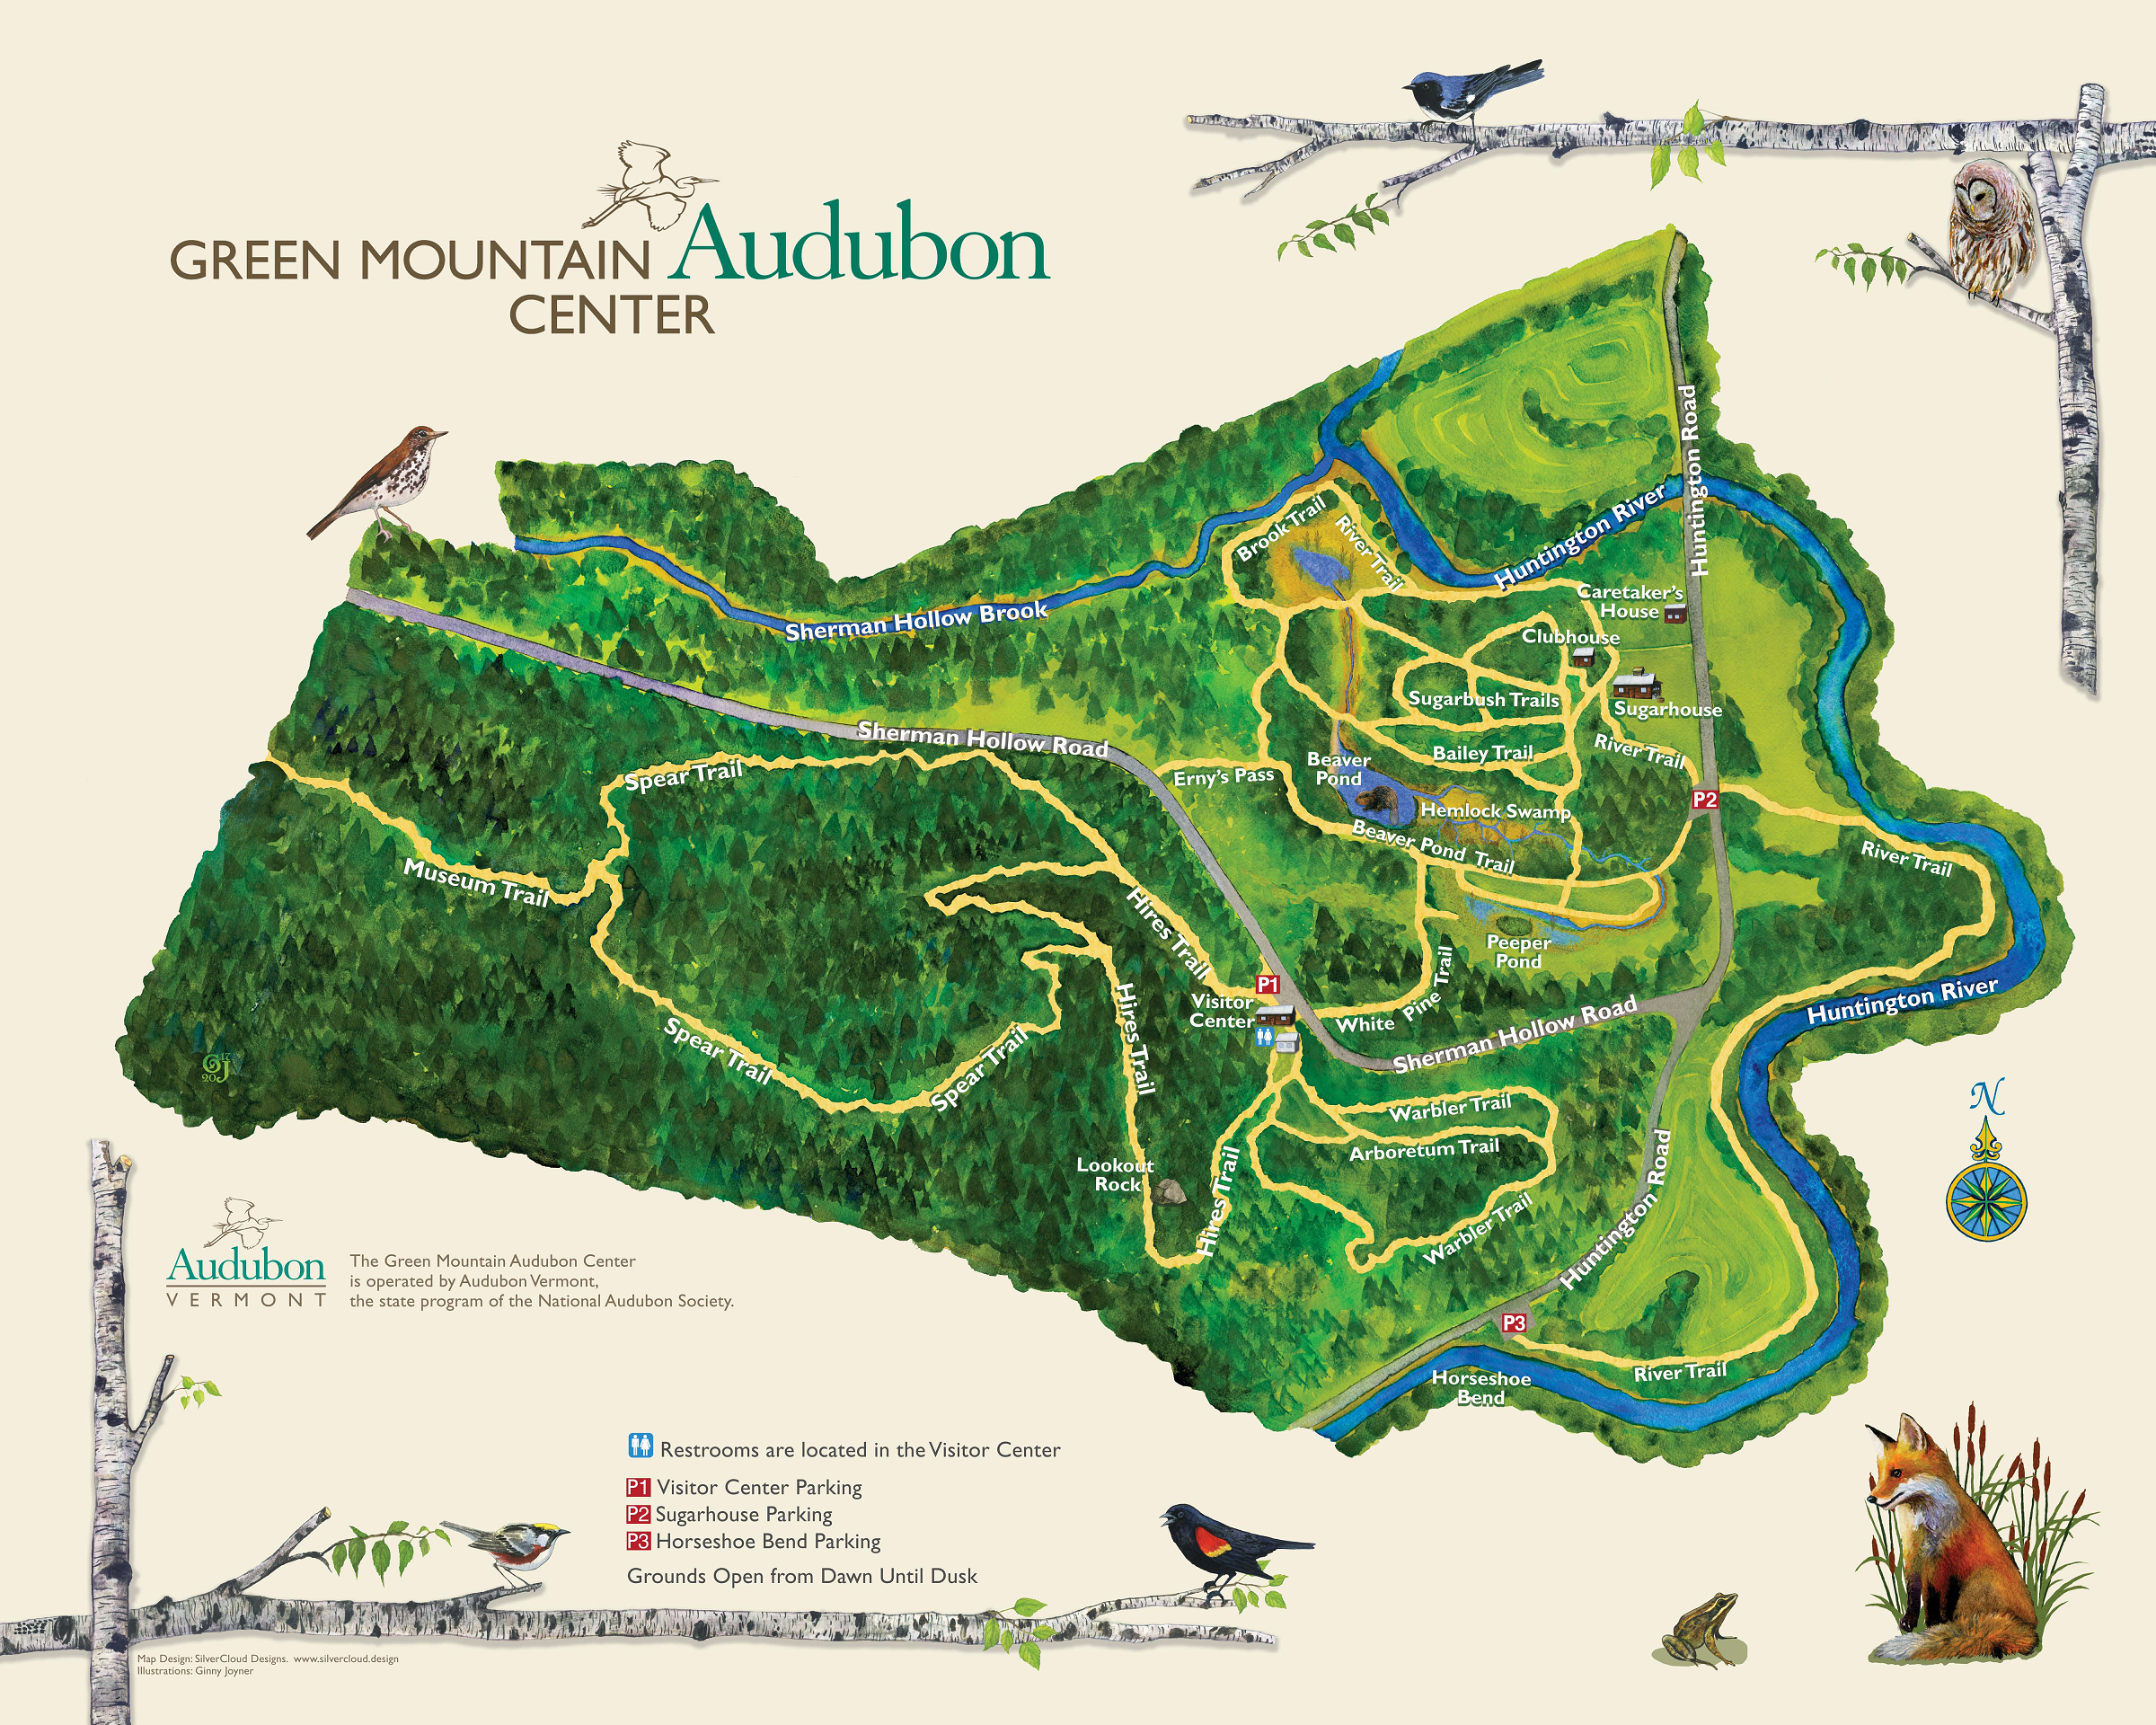 Audubon Vermont: Green Mountain Audubon Center | Climate Change ...